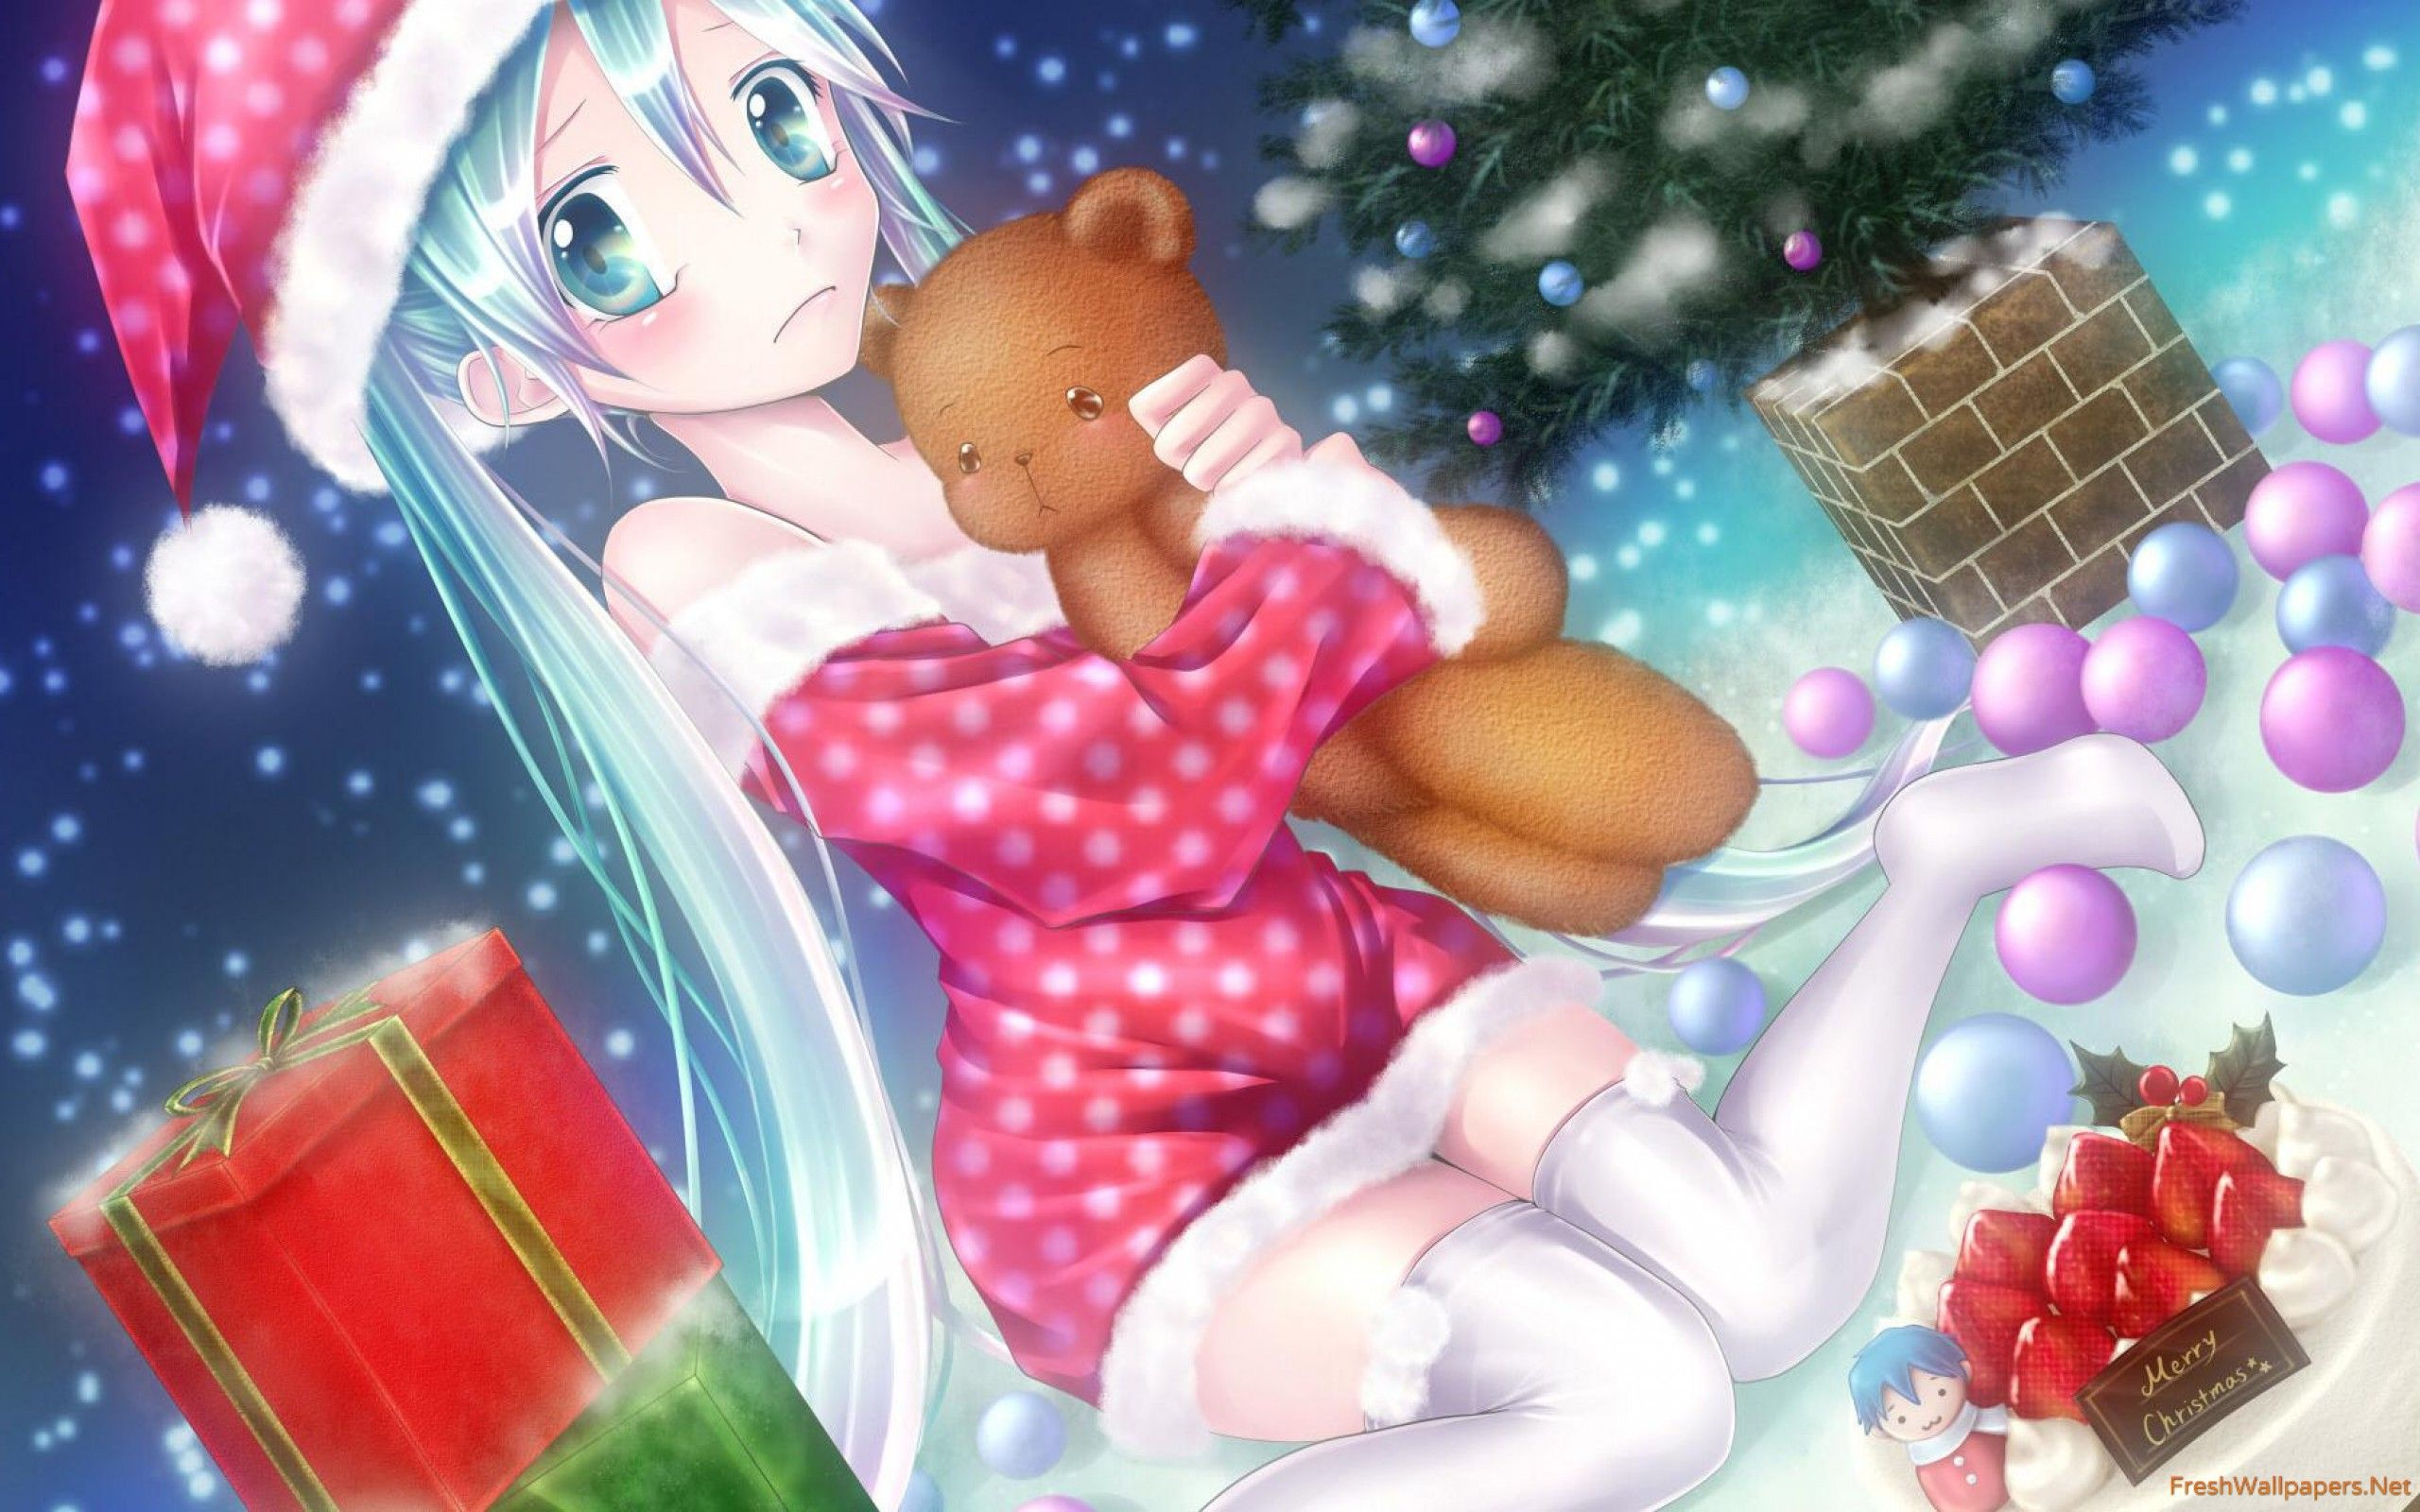 2560x1600 Vocaloid Christmas with Hatsune Miku wallpapers | Freshwallpapers